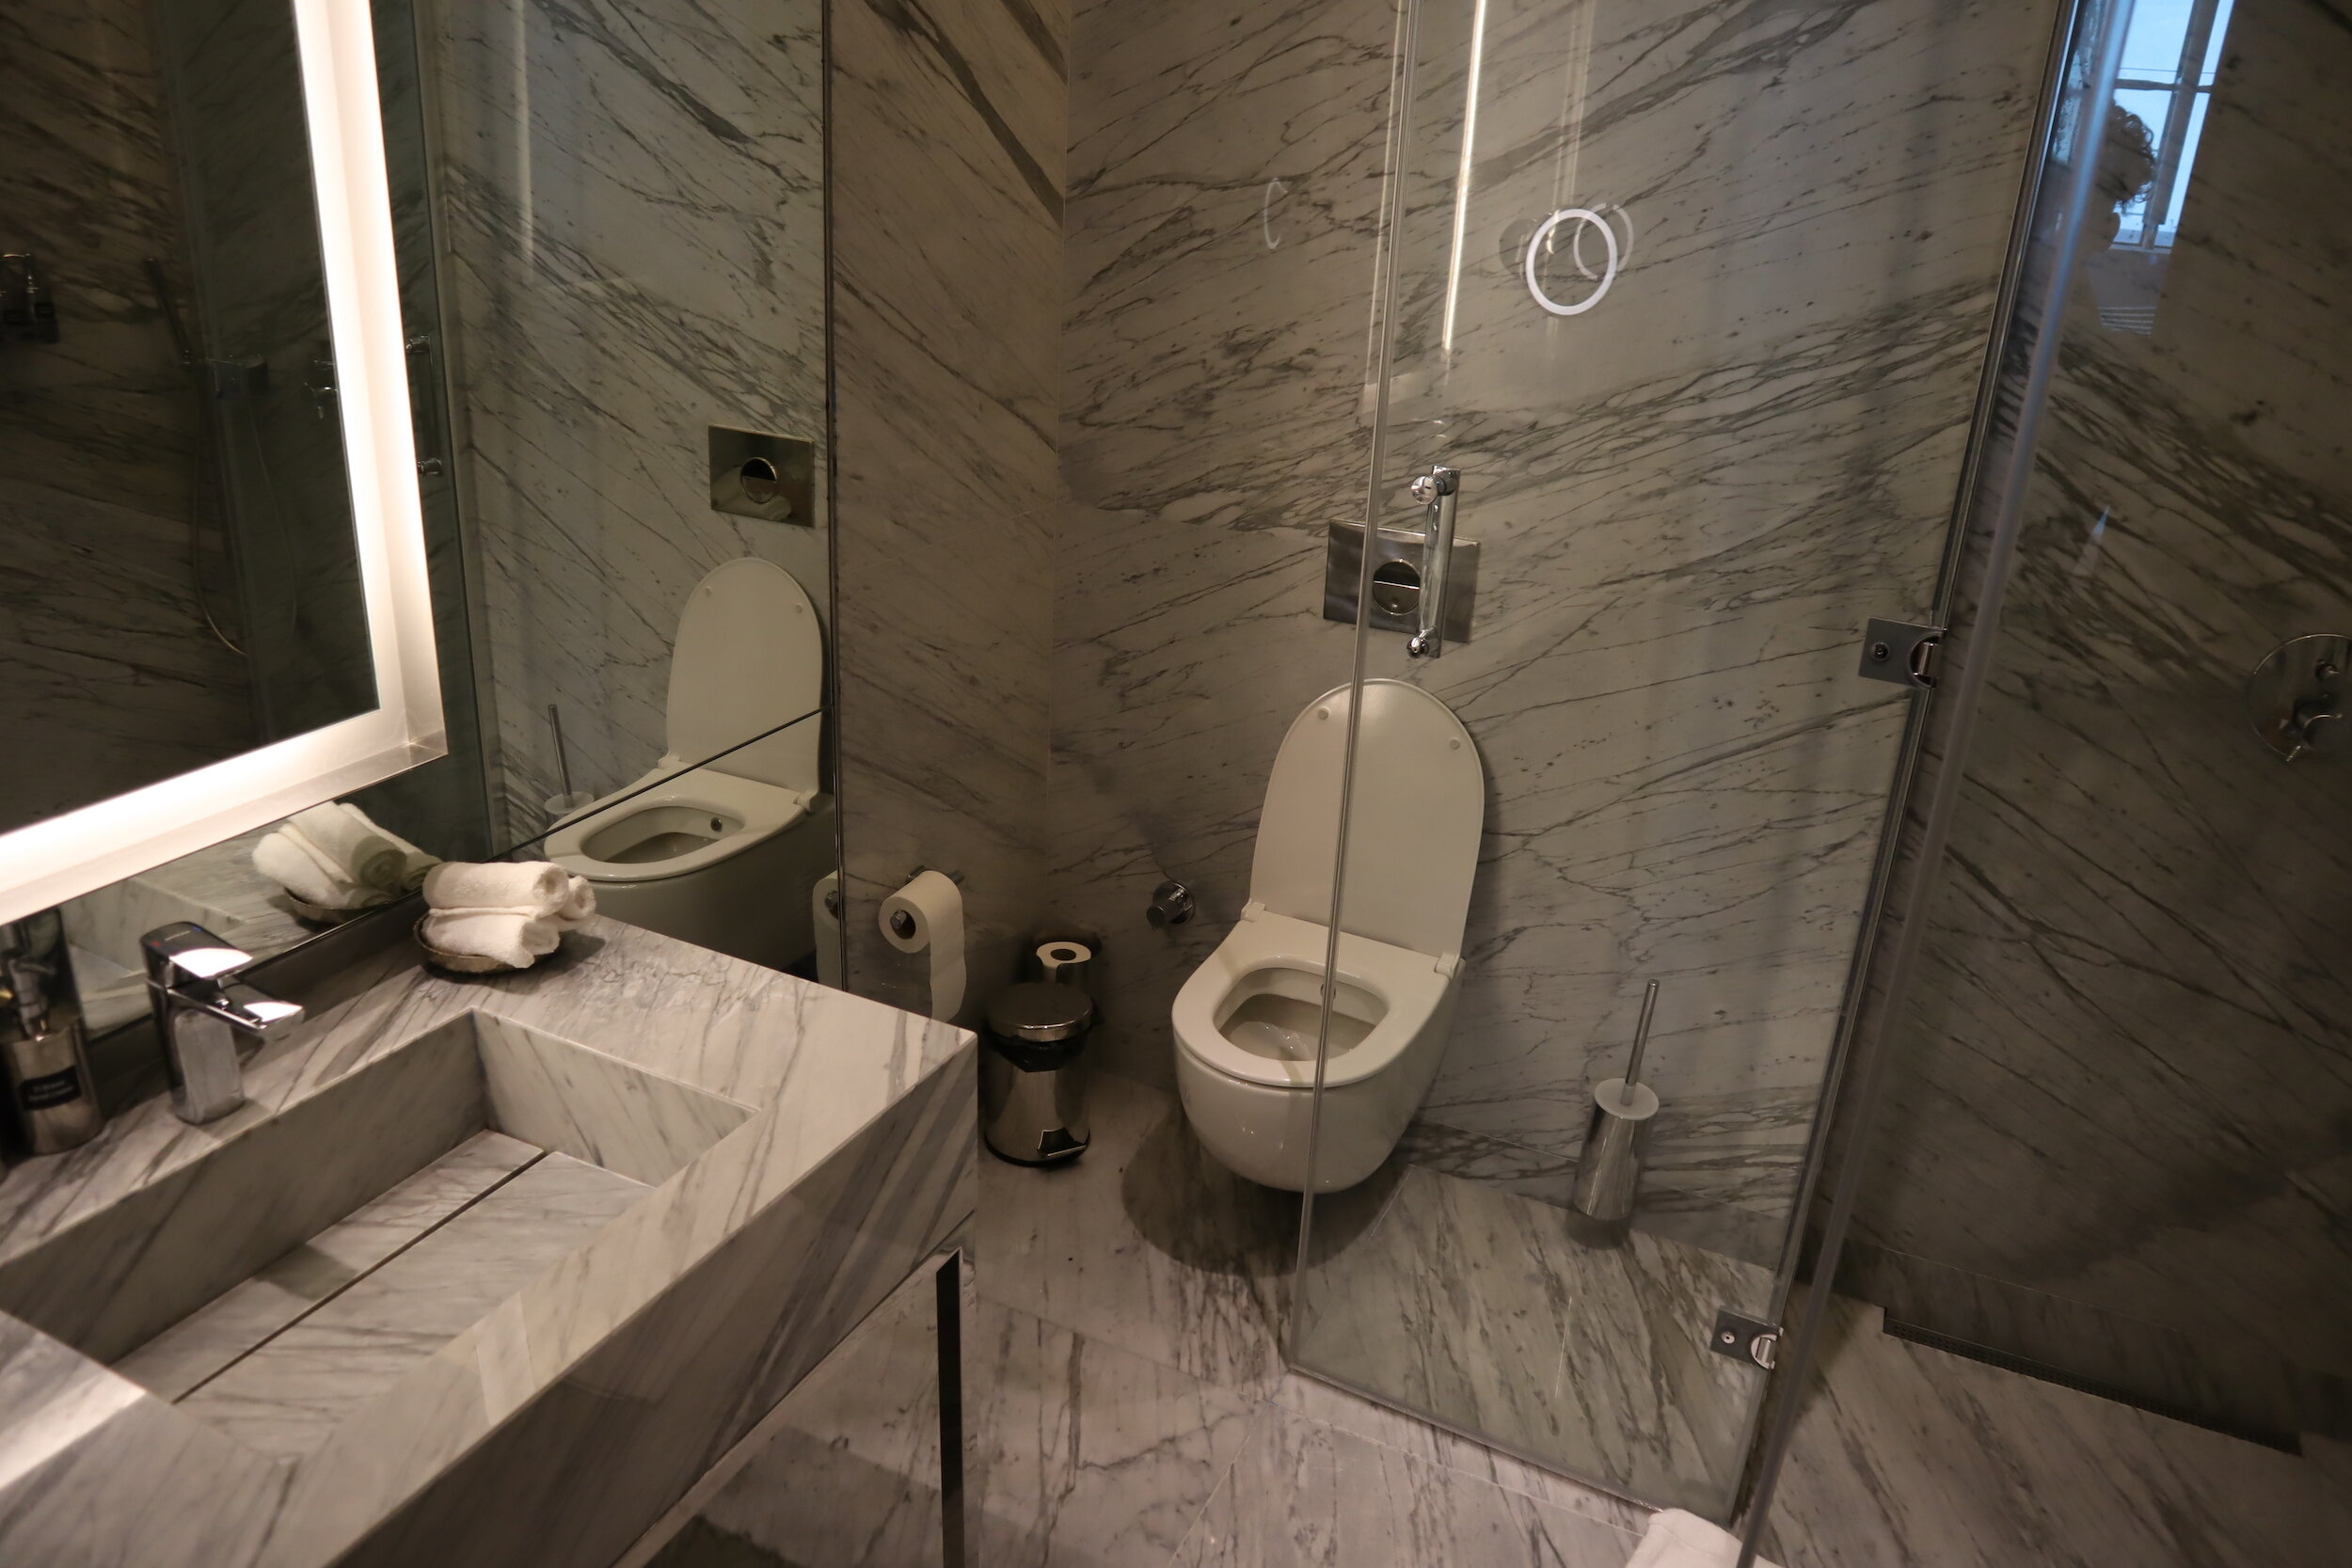 Turkish Airlines Business Lounge Istanbul – Shower room